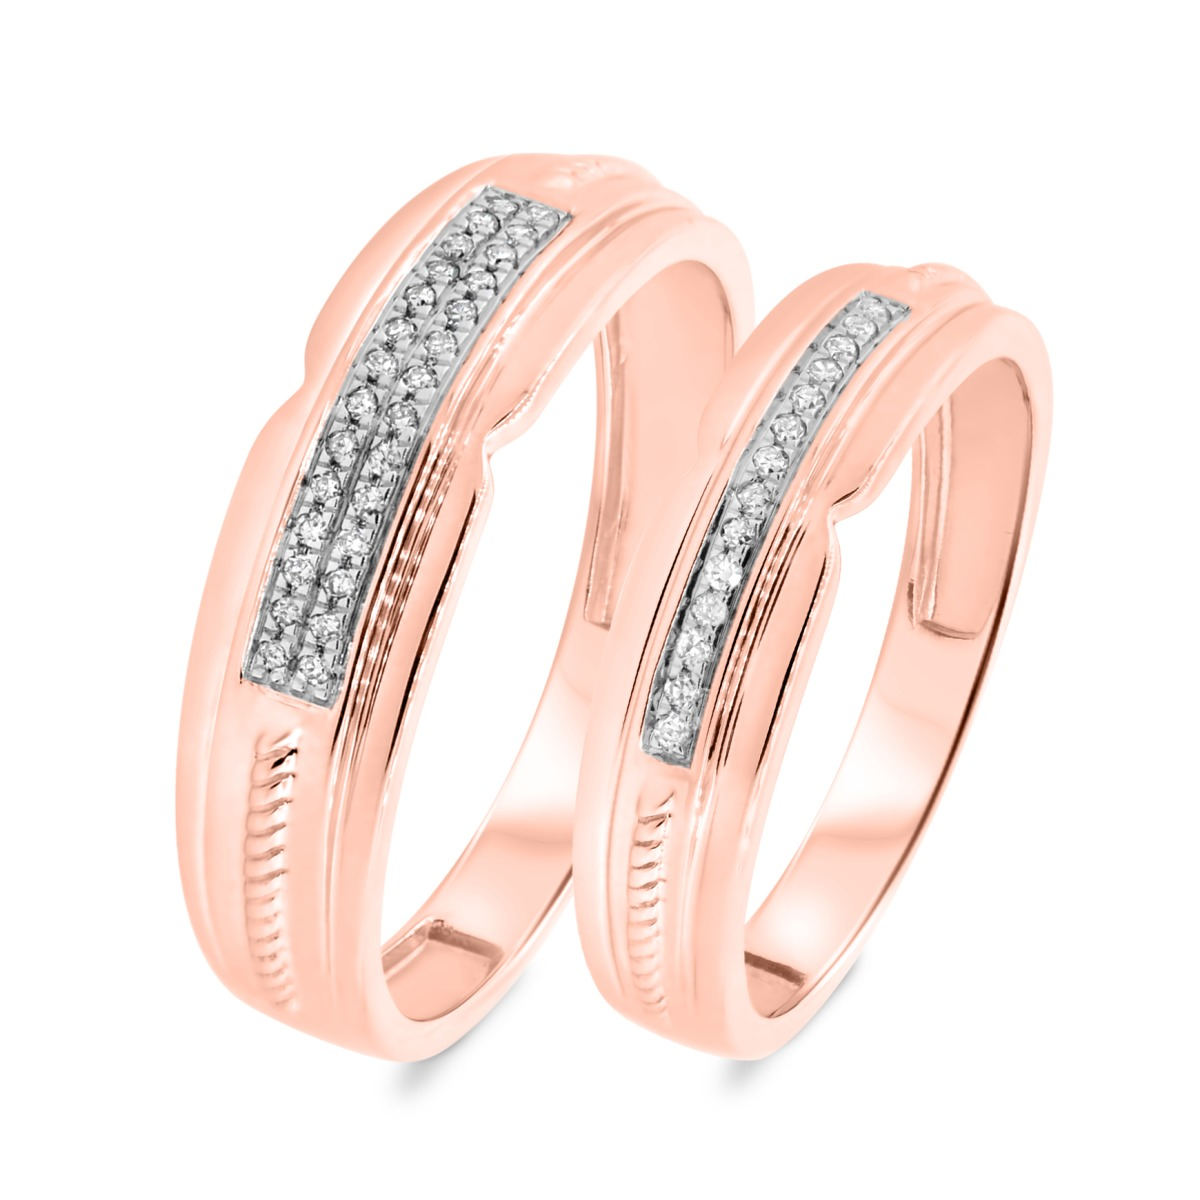 1/8 Carat T.W. Diamond Matching Wedding Band Set 10K Rose Gold